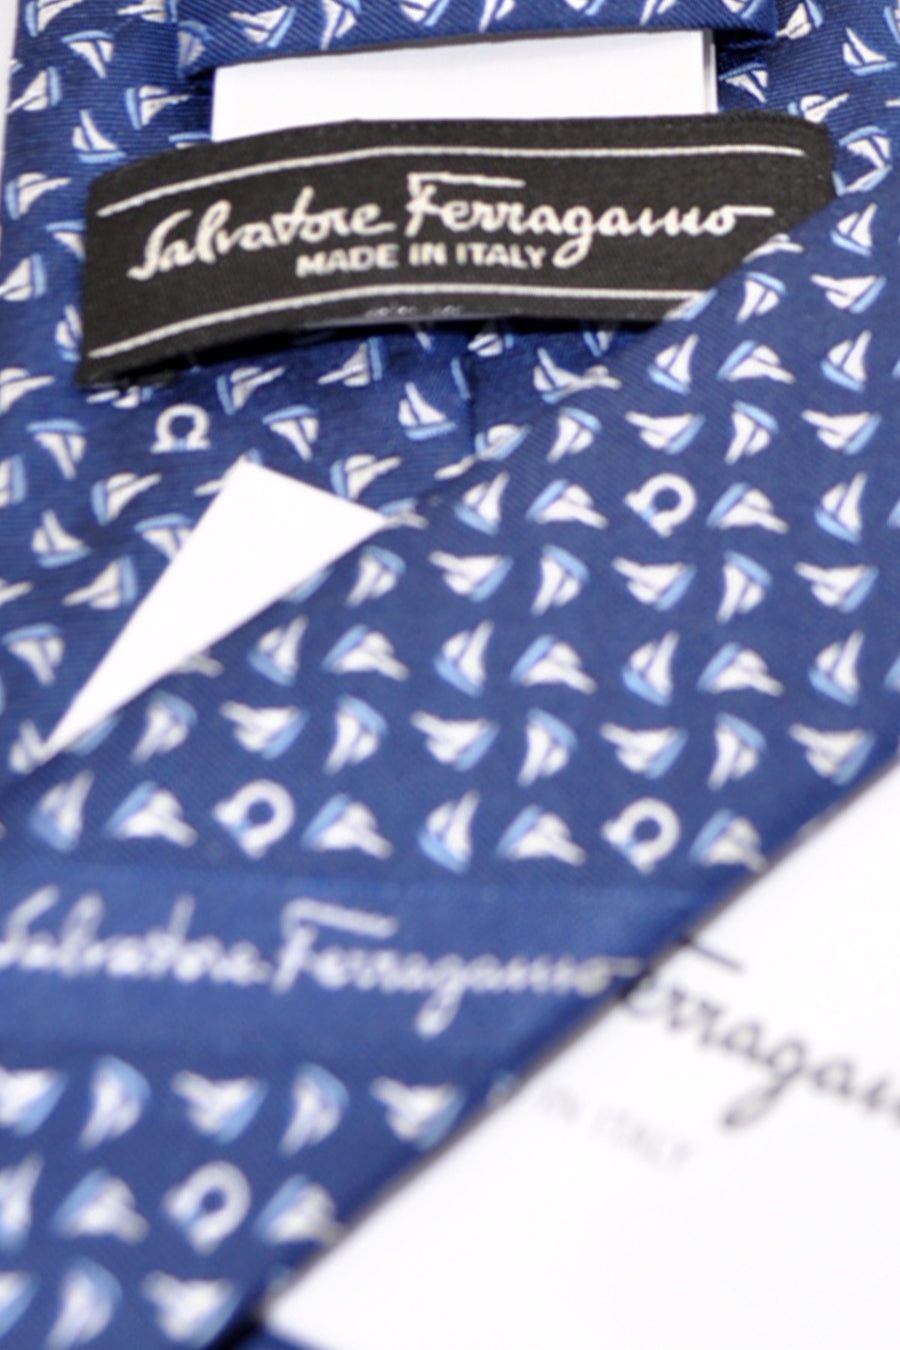 Salvatore Ferragamo Tie Navy Sail Boat - Spring / Summer 2017 Collection